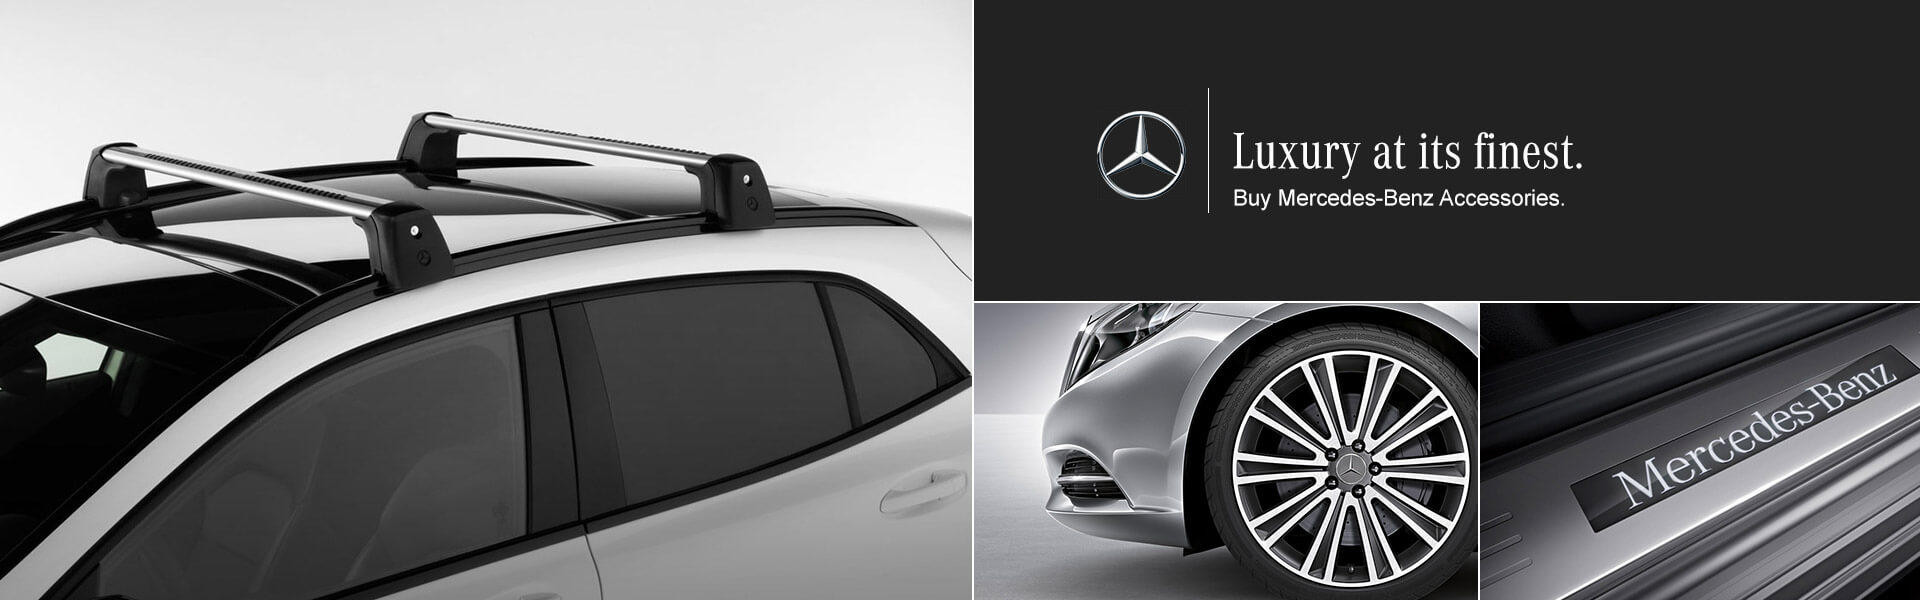 Luxury at its Finest - Trust only Mercedes OEM Accessories